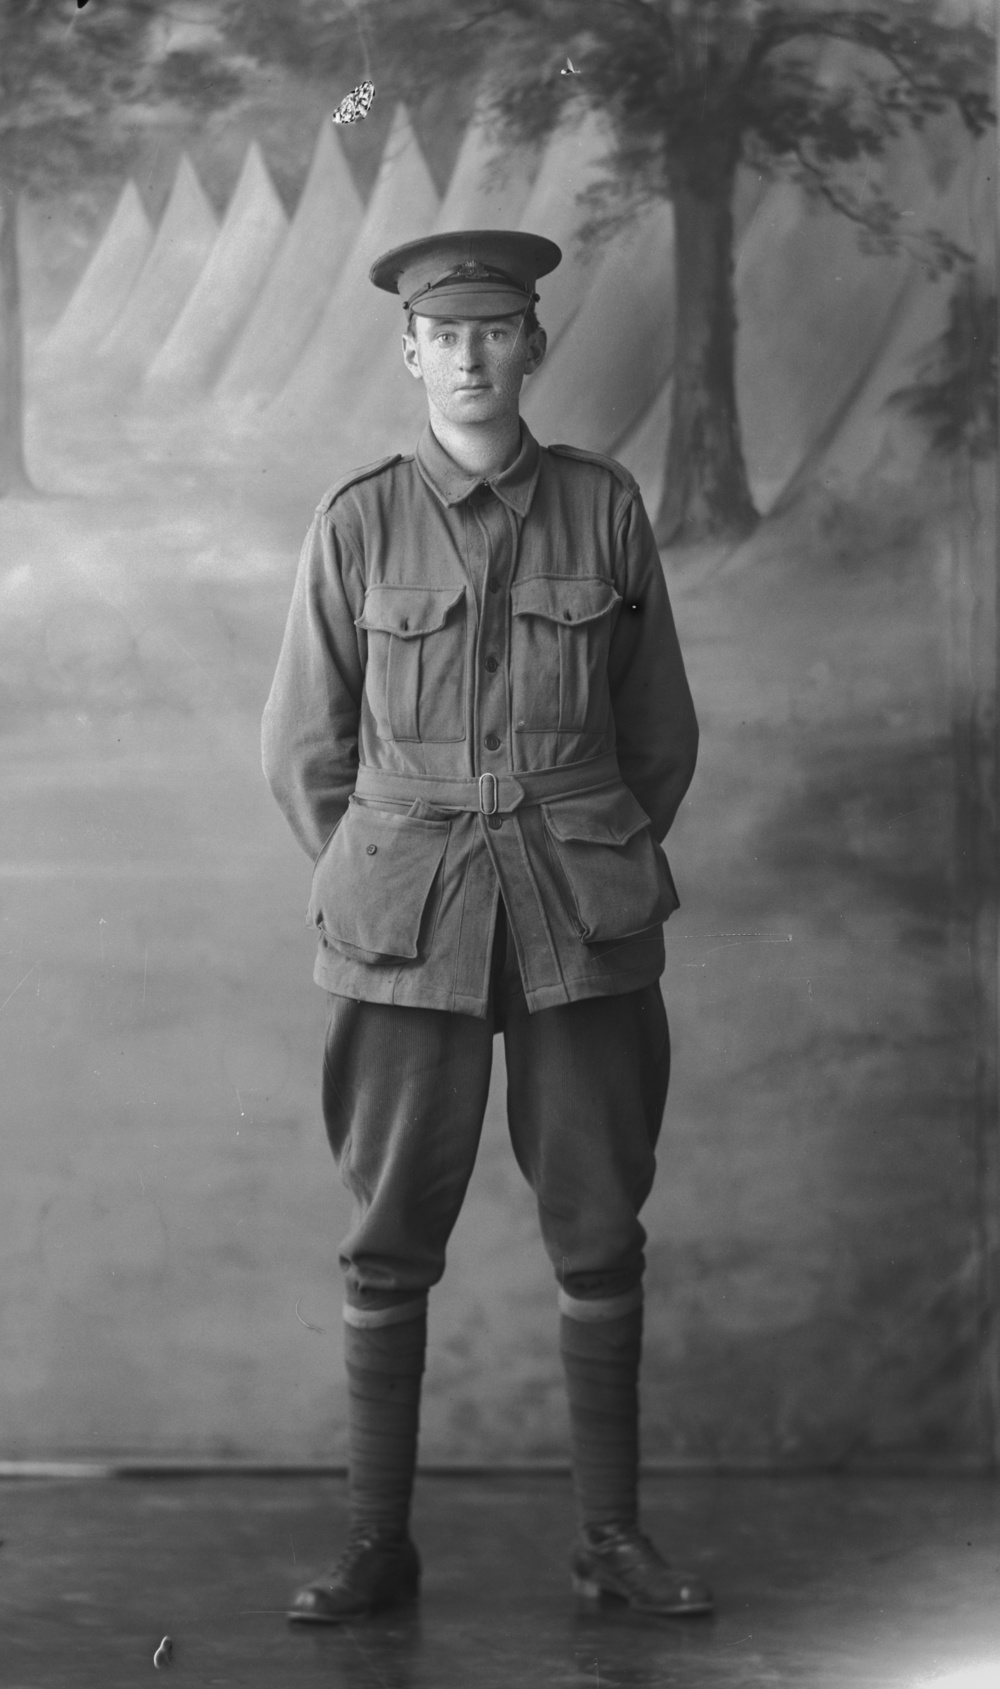 Photographed at the Dease Studio, 117 Barrack Street Perth WA Image courtesy of the State Library of Western Australia: 108138PD